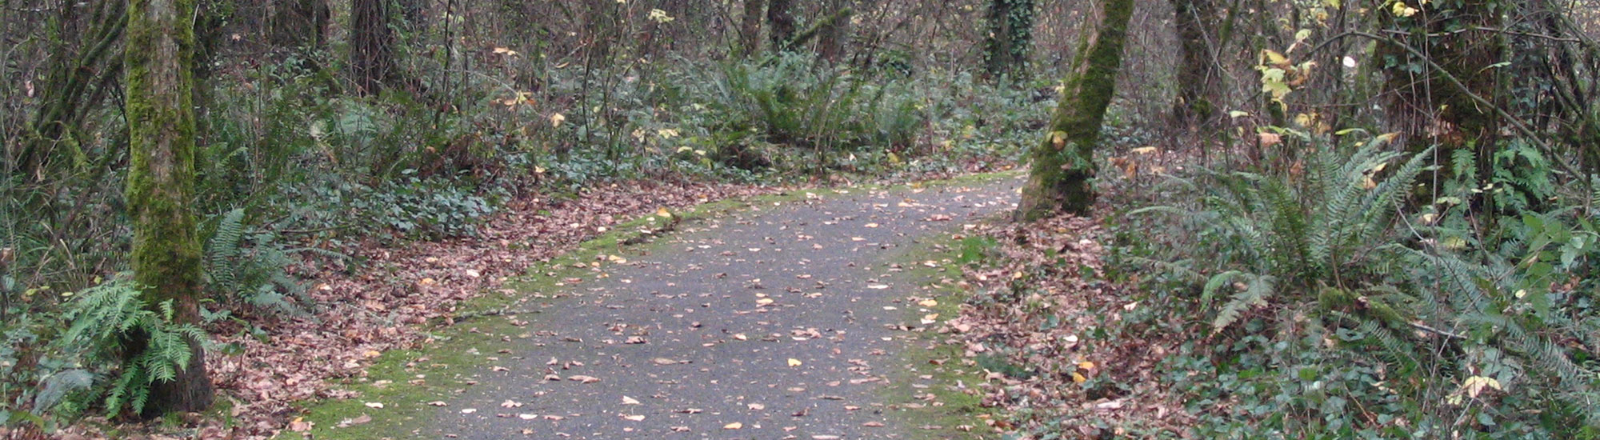 Mary S Young Park Path, West Linn